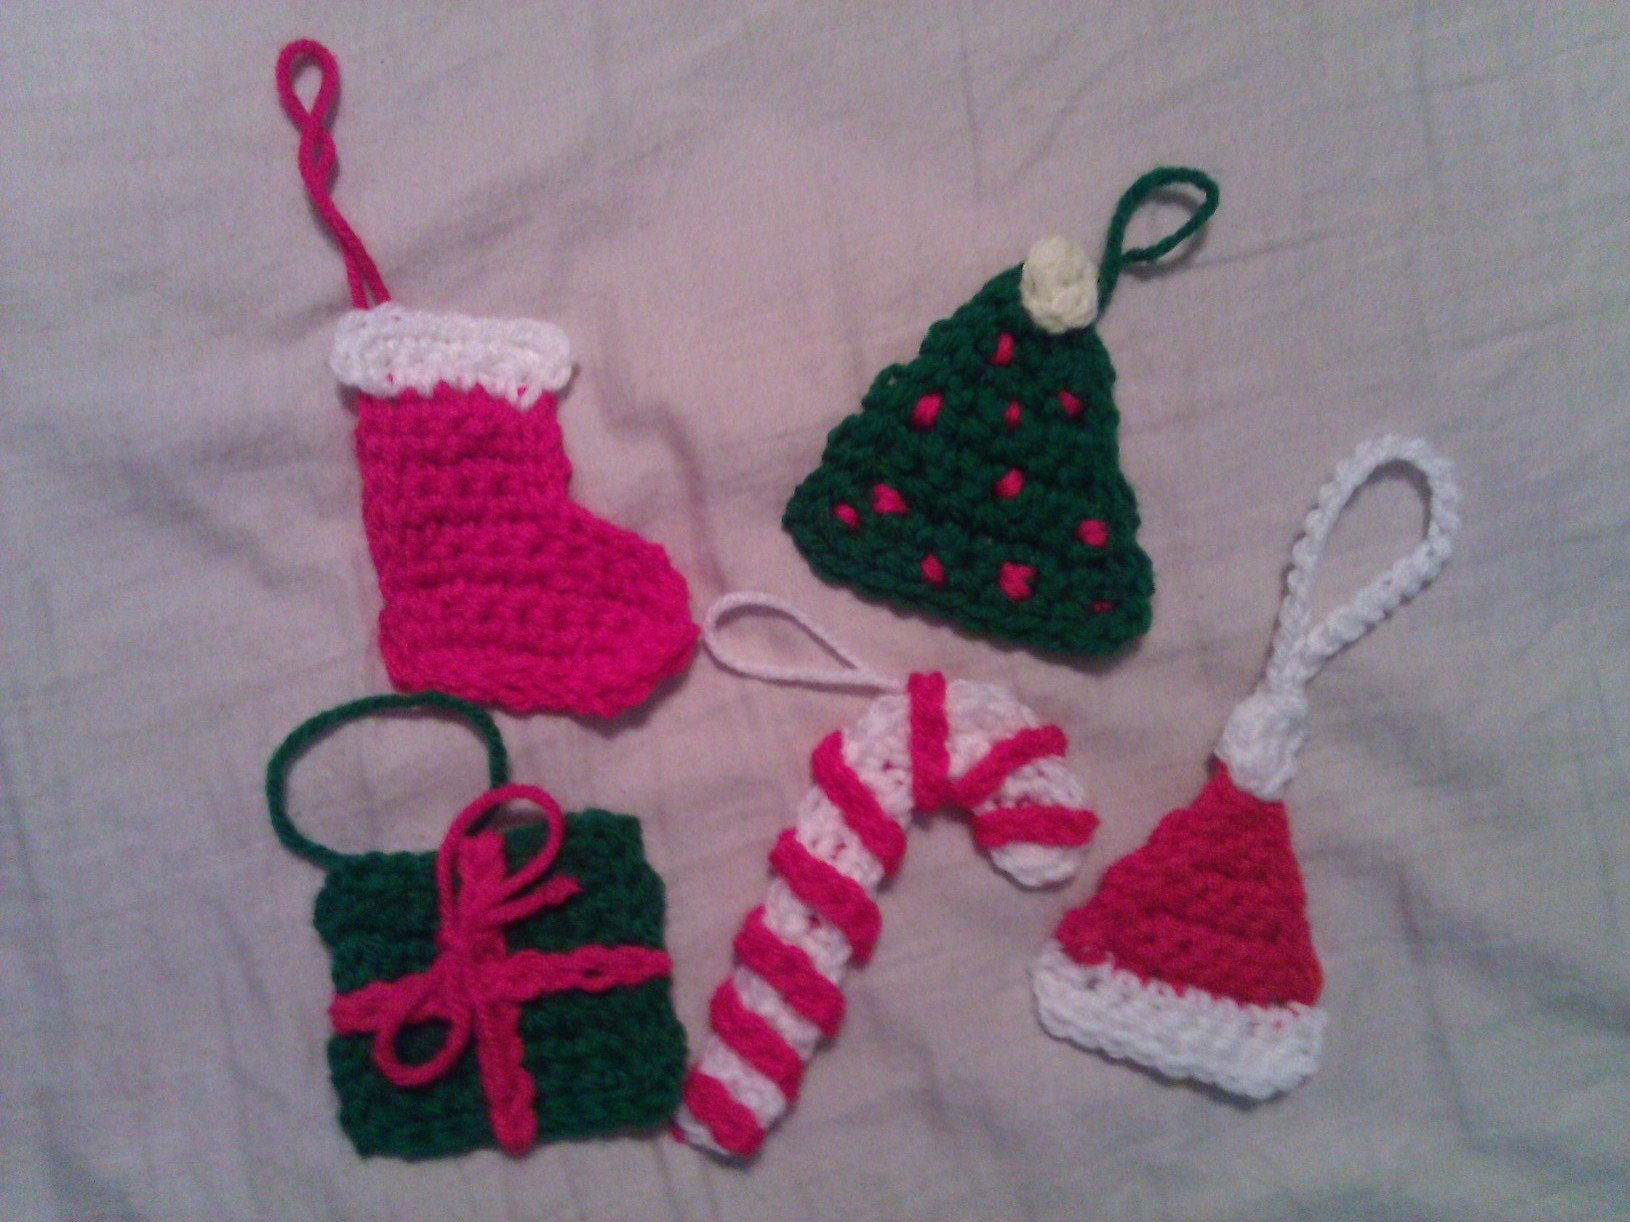 Crochet Christmas Present Ornament Pattern cRAfterchick